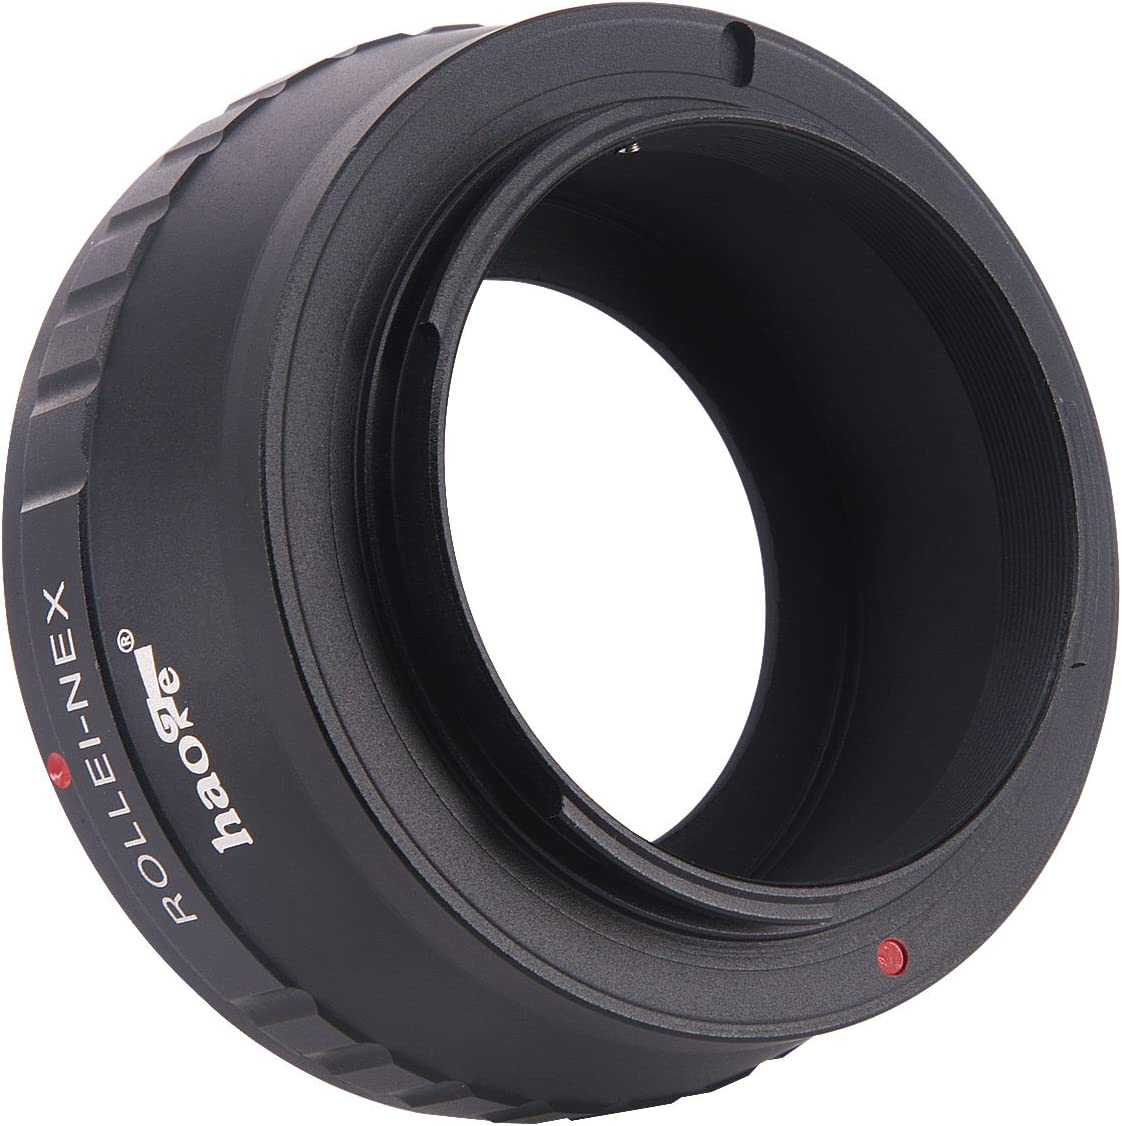 Haoge Manual Lens Mount Adapter for Rollei 35 SL35 QBM Quick Bayonet Mount Lens to Sony E NEX Camera a3000 a3500 a5000 a5100 a6000 a6400 a6500 A7 A7R A7S A7II A7RII A7SII A7III A7RIII A9 VG30 FS7 FS5